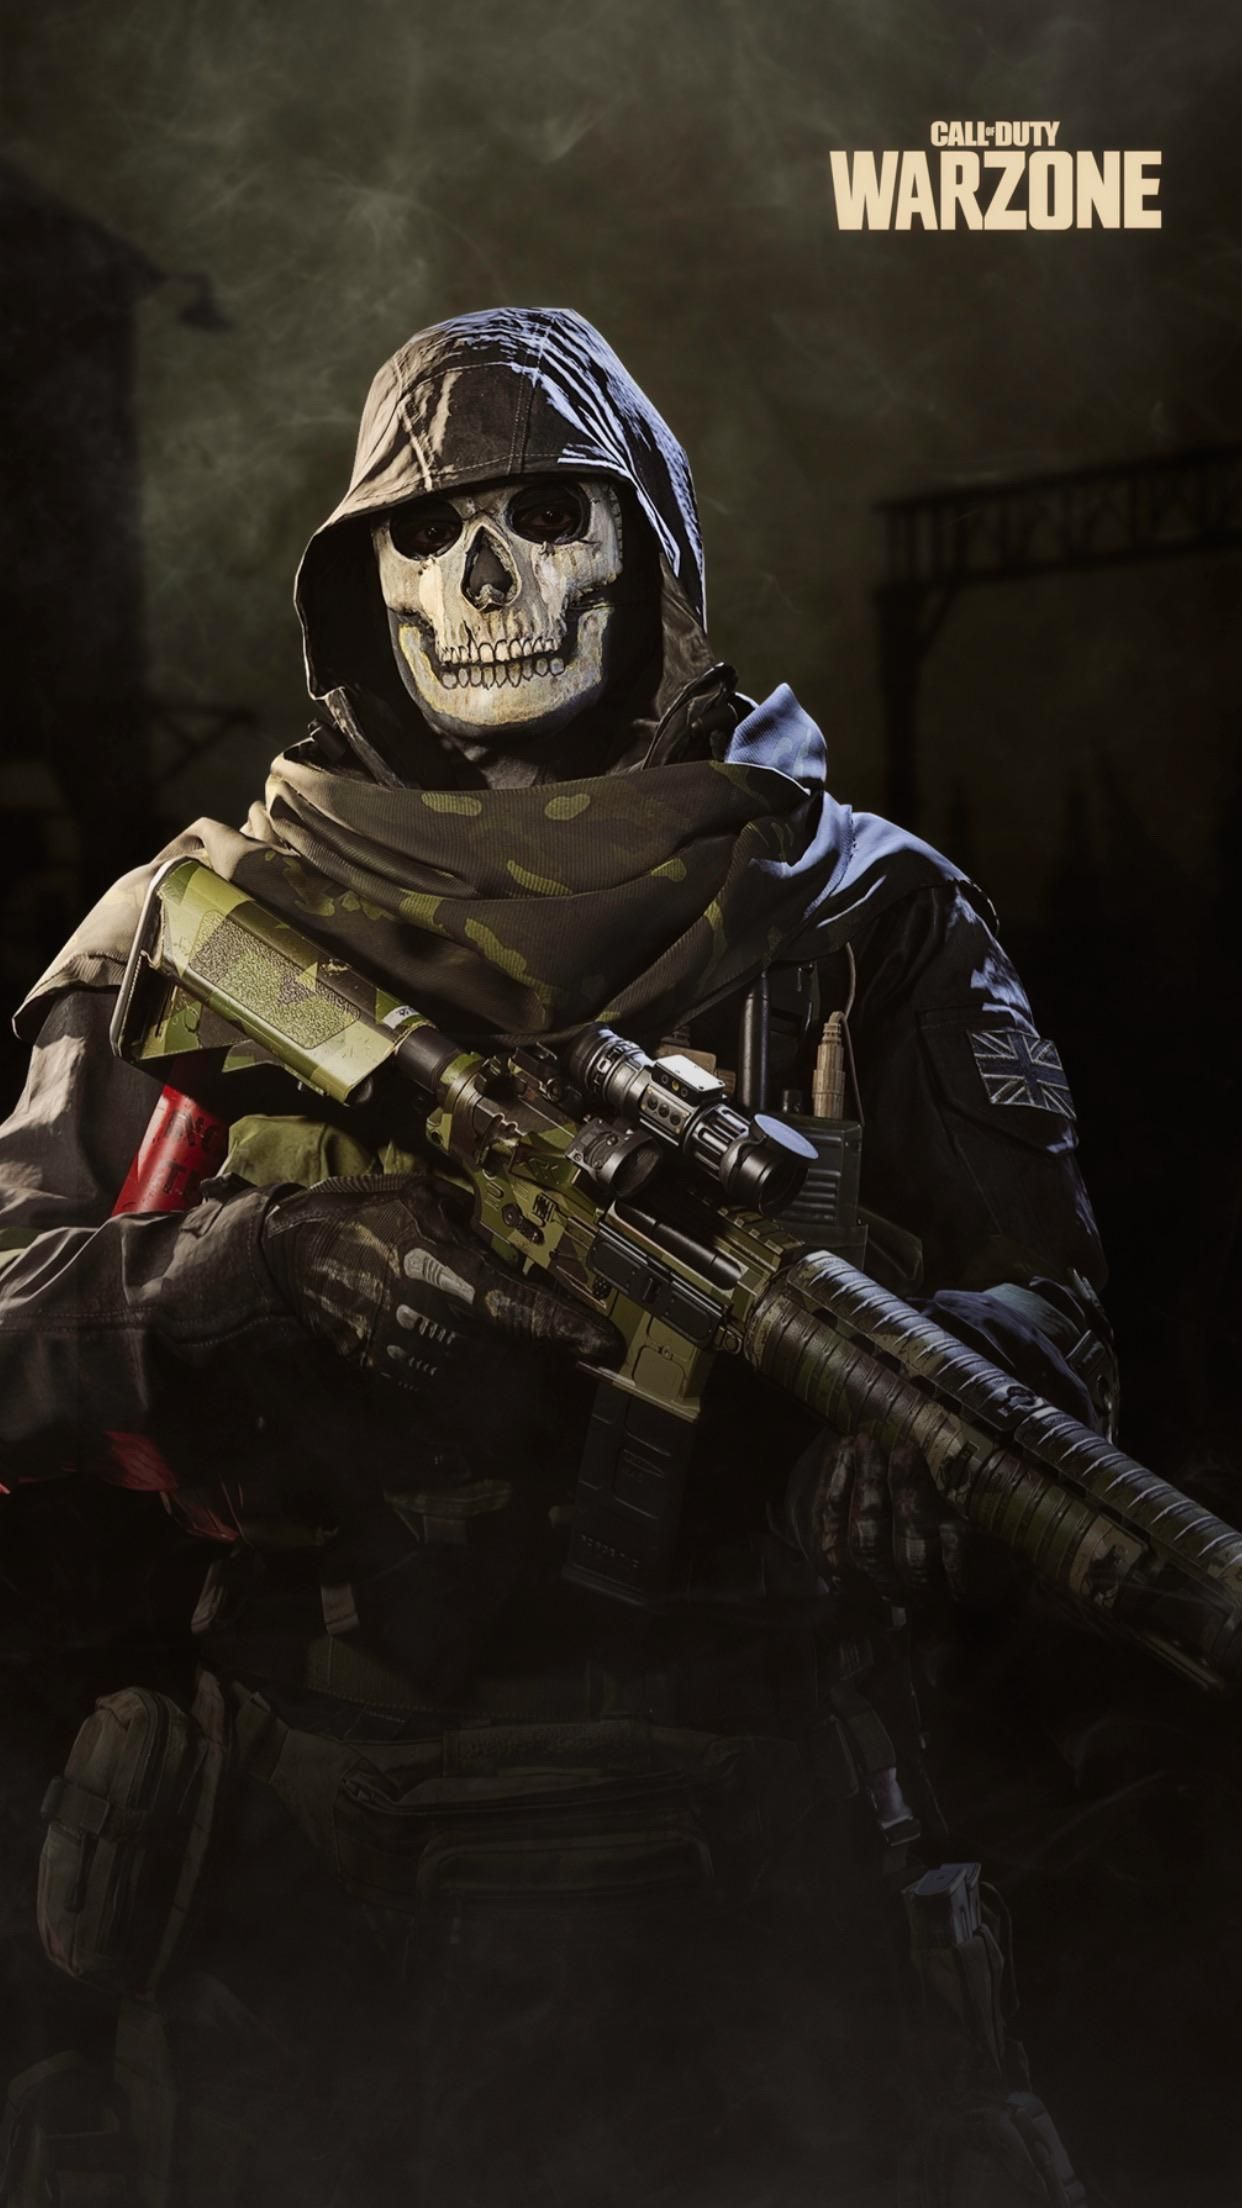 Call Of Duty Warzone Phone Wallpapers Call Of Duty Call Of Duty Ghosts Call Of Duty Zombies